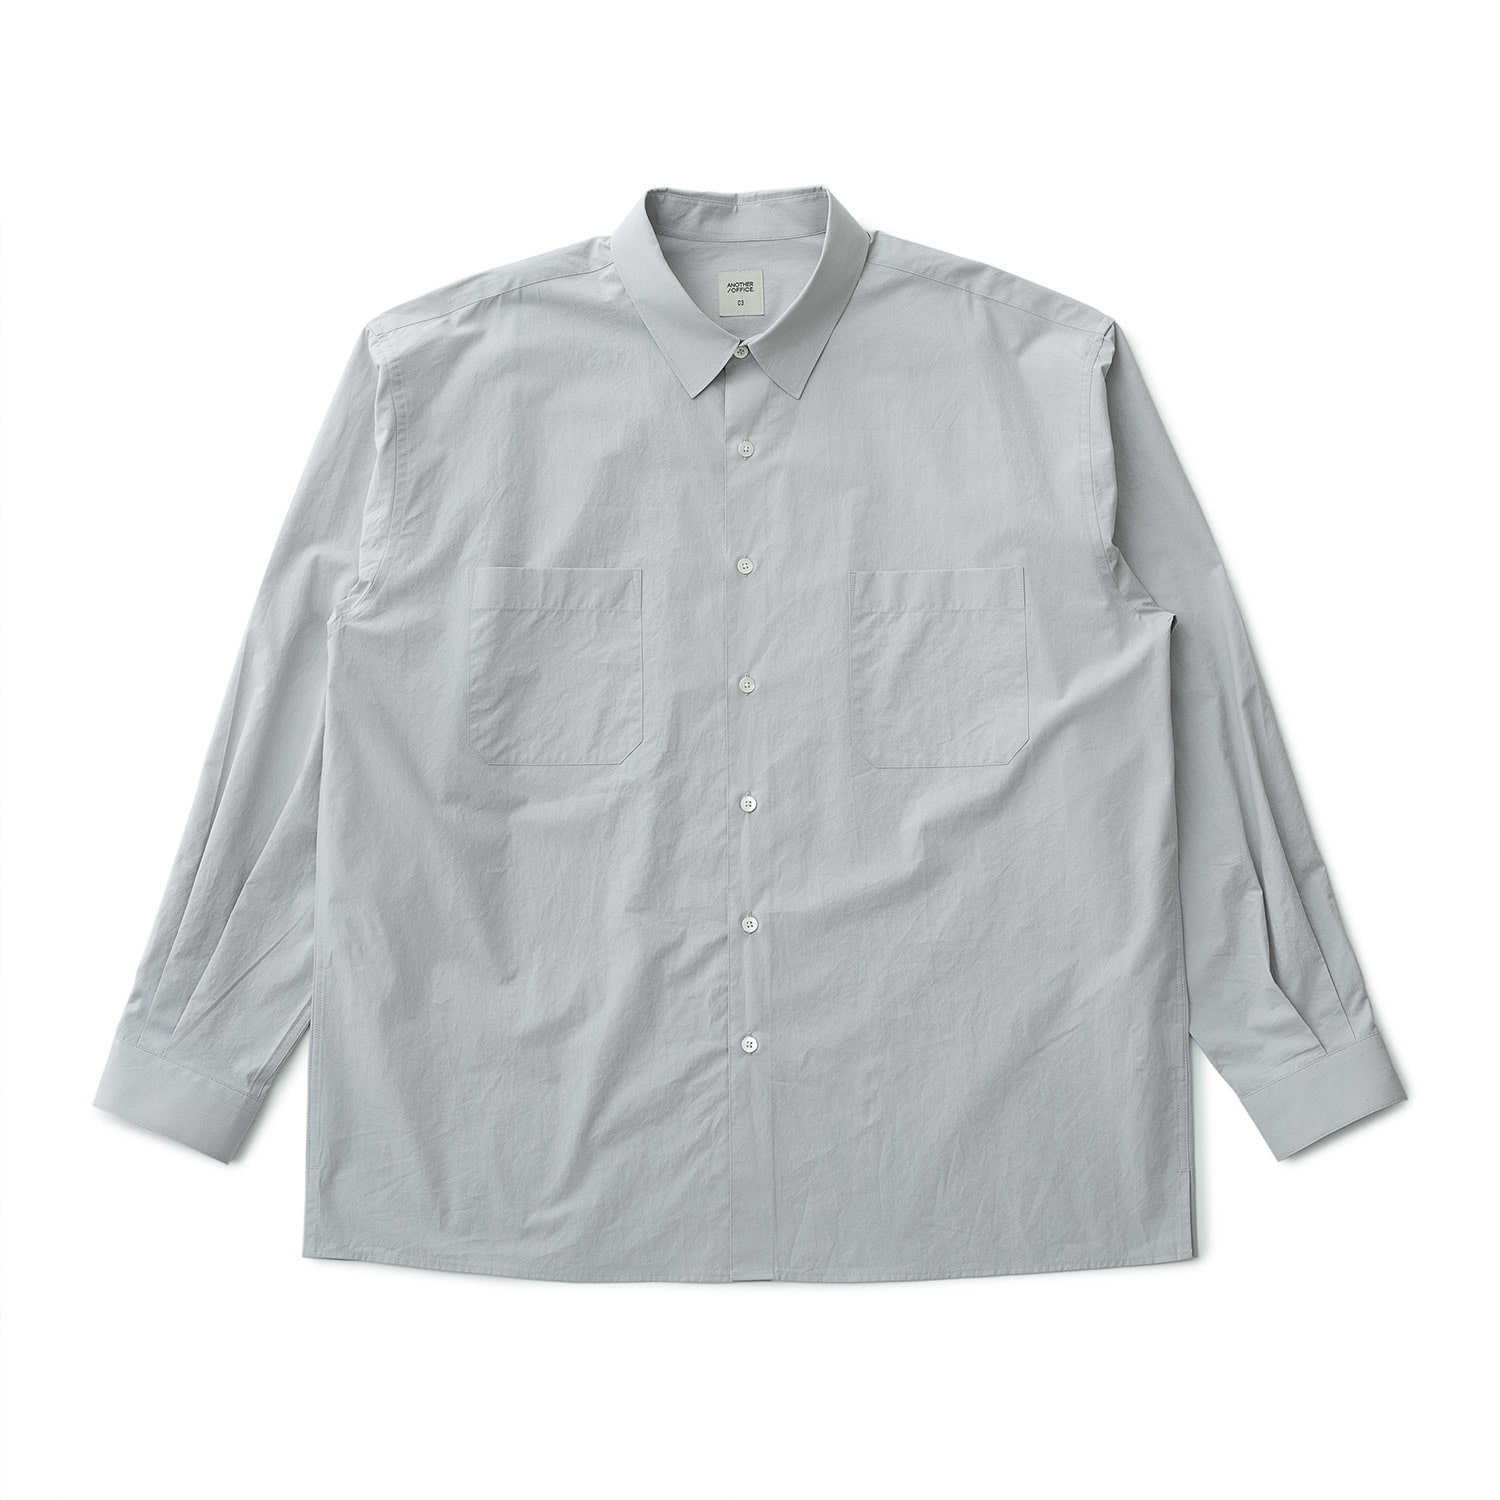 21SS Comfy Oversized Shirt (Dove Gray)